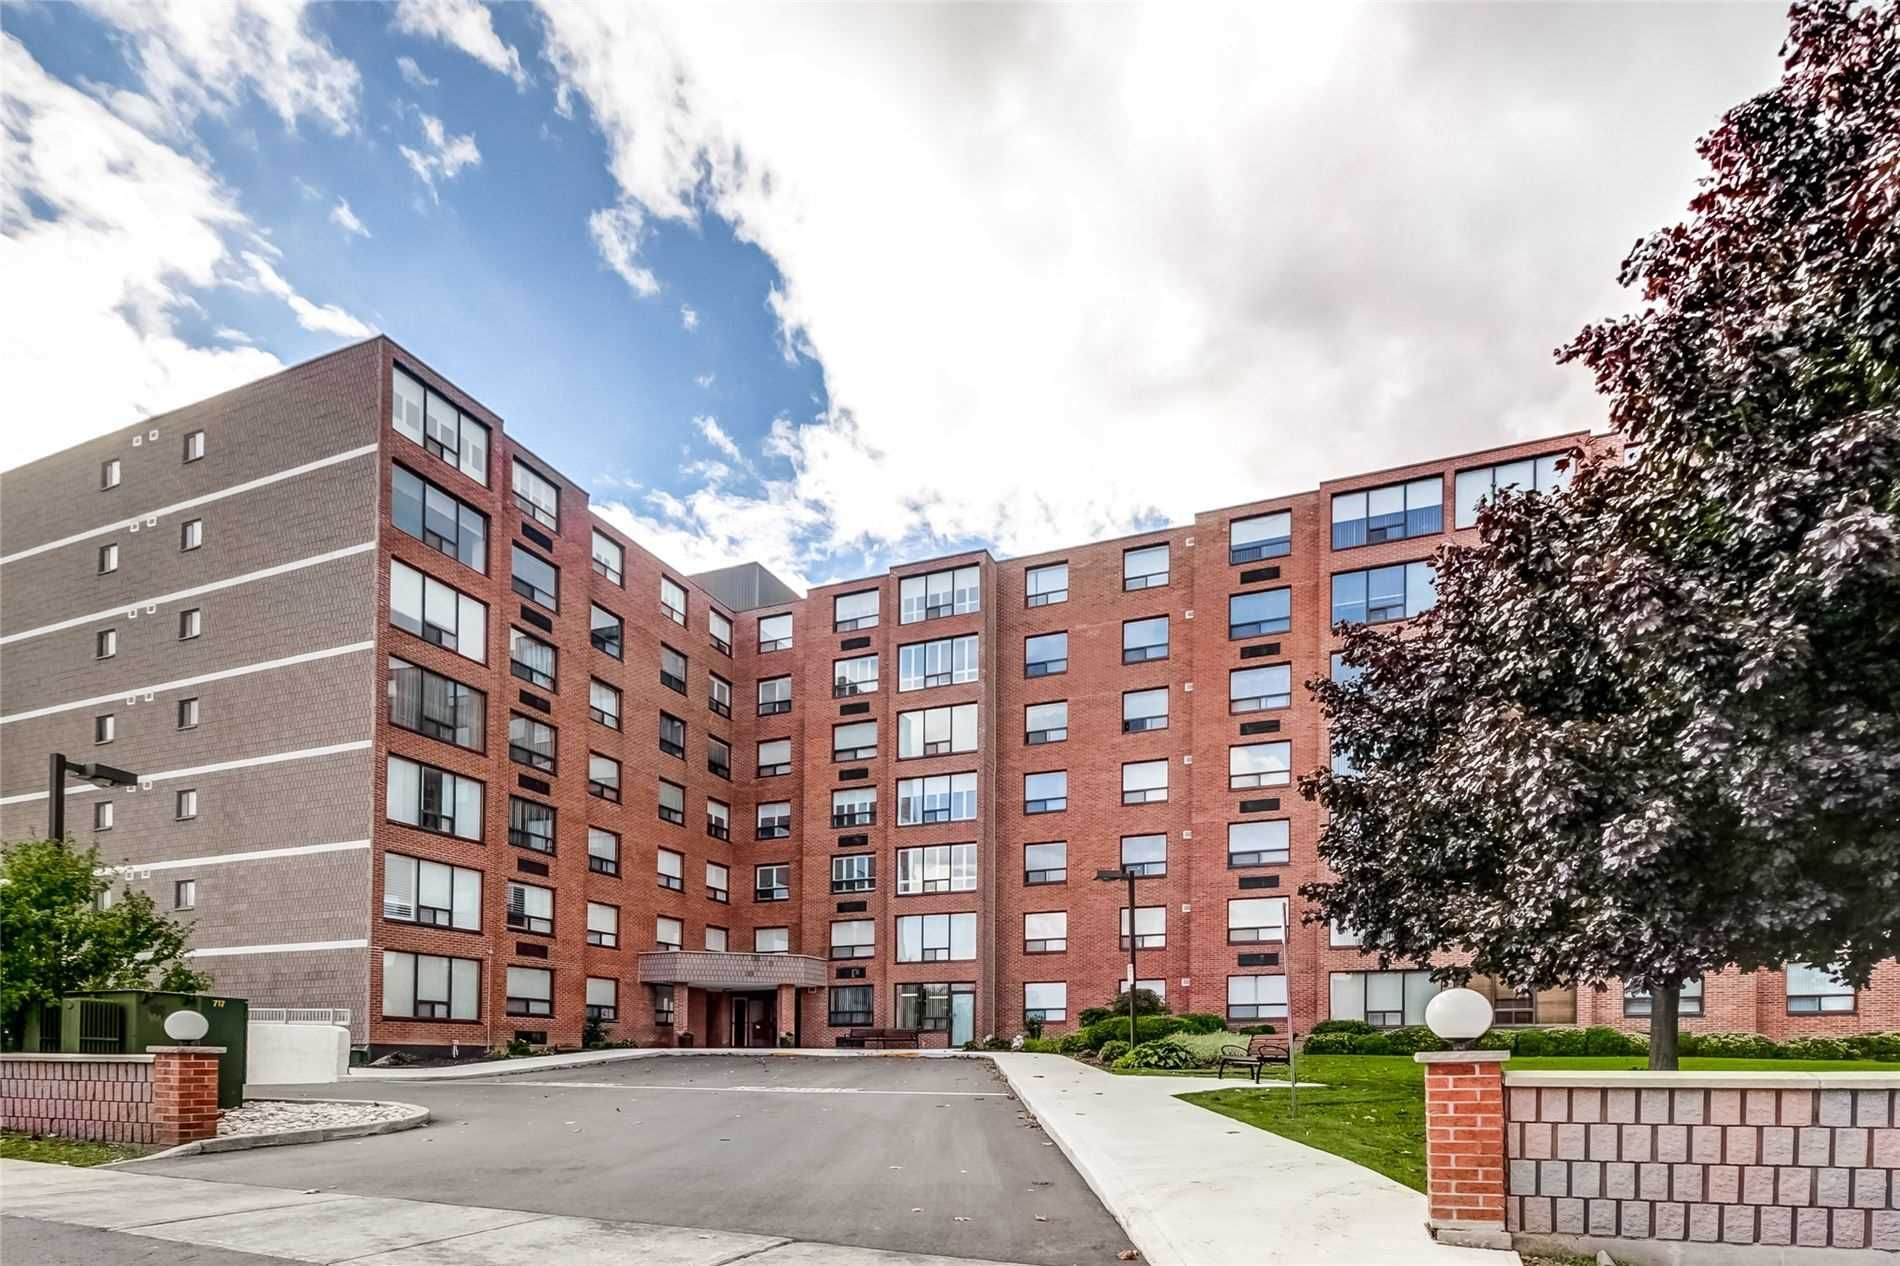 99 Donn Ave, unit 204 for sale in Toronto - image #1